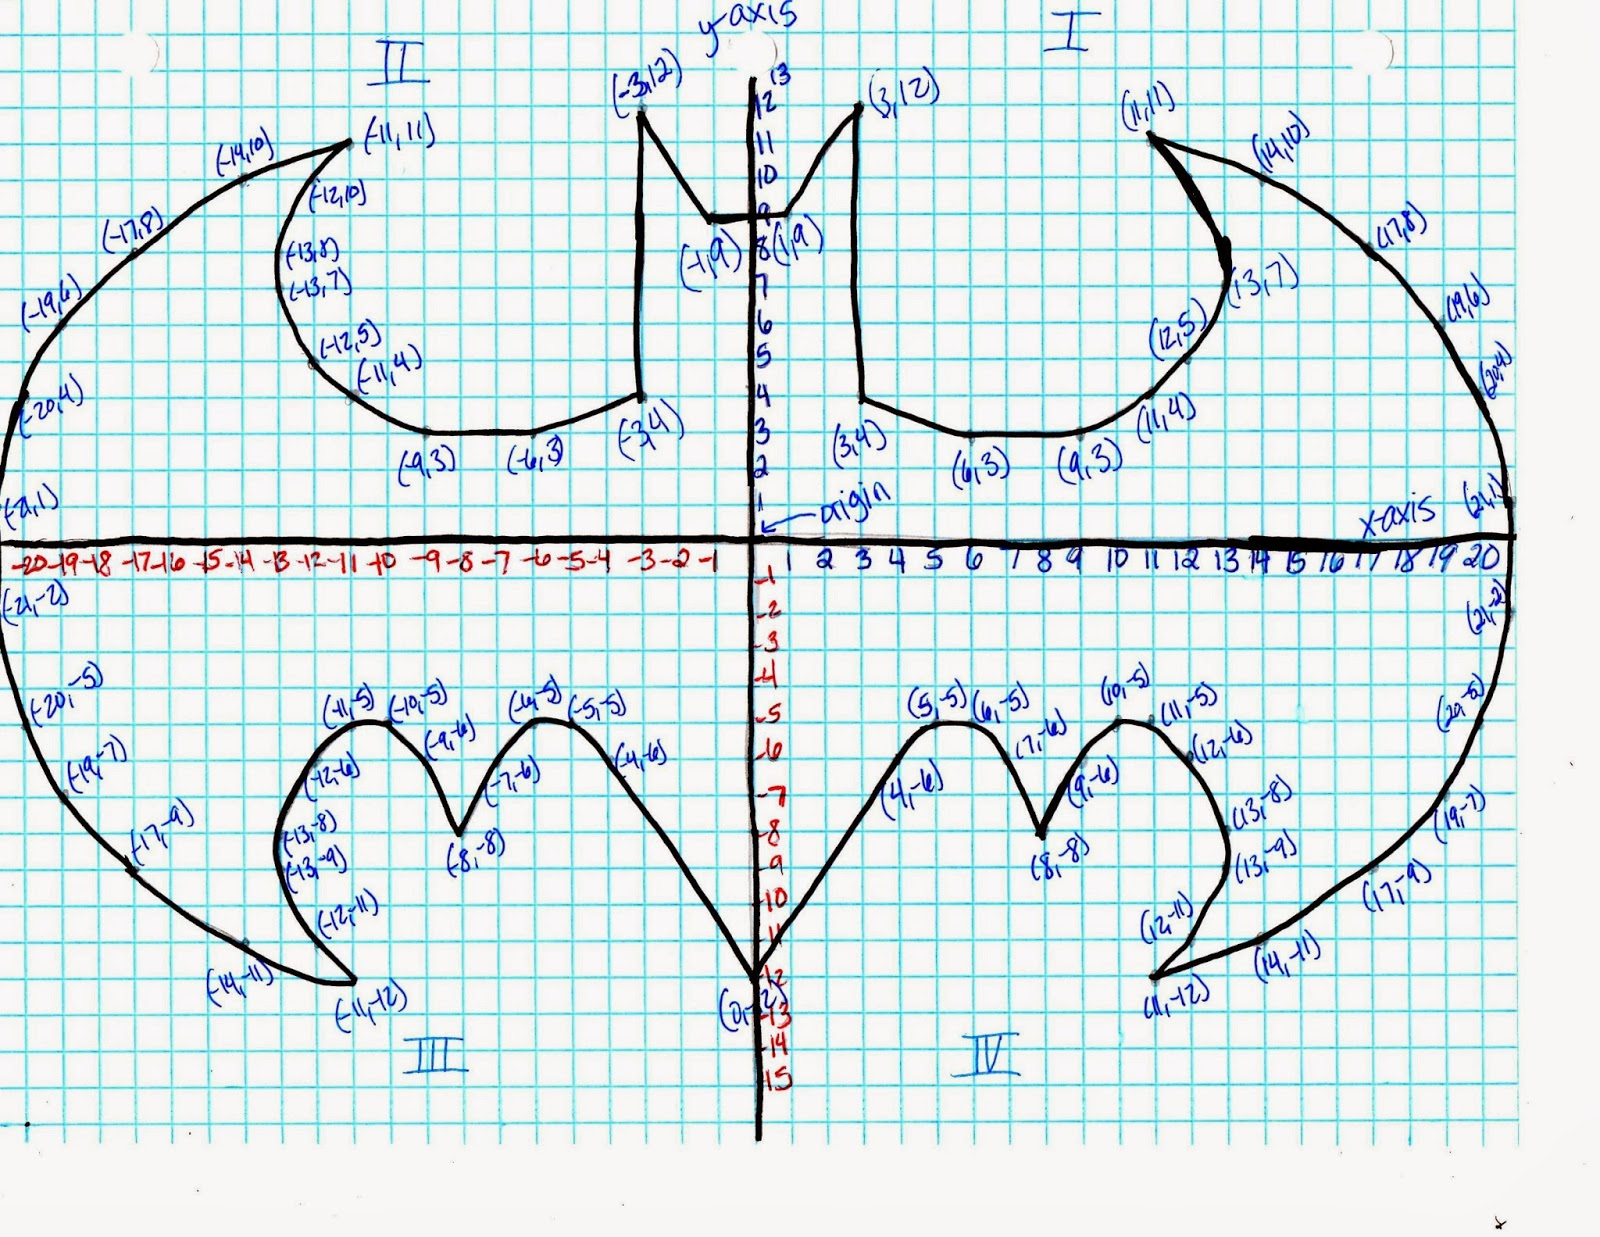 worksheet Coordinate Graphing Pictures batman coordinate graphing worksheets llamadirectory com plane make pictures worksheet pages